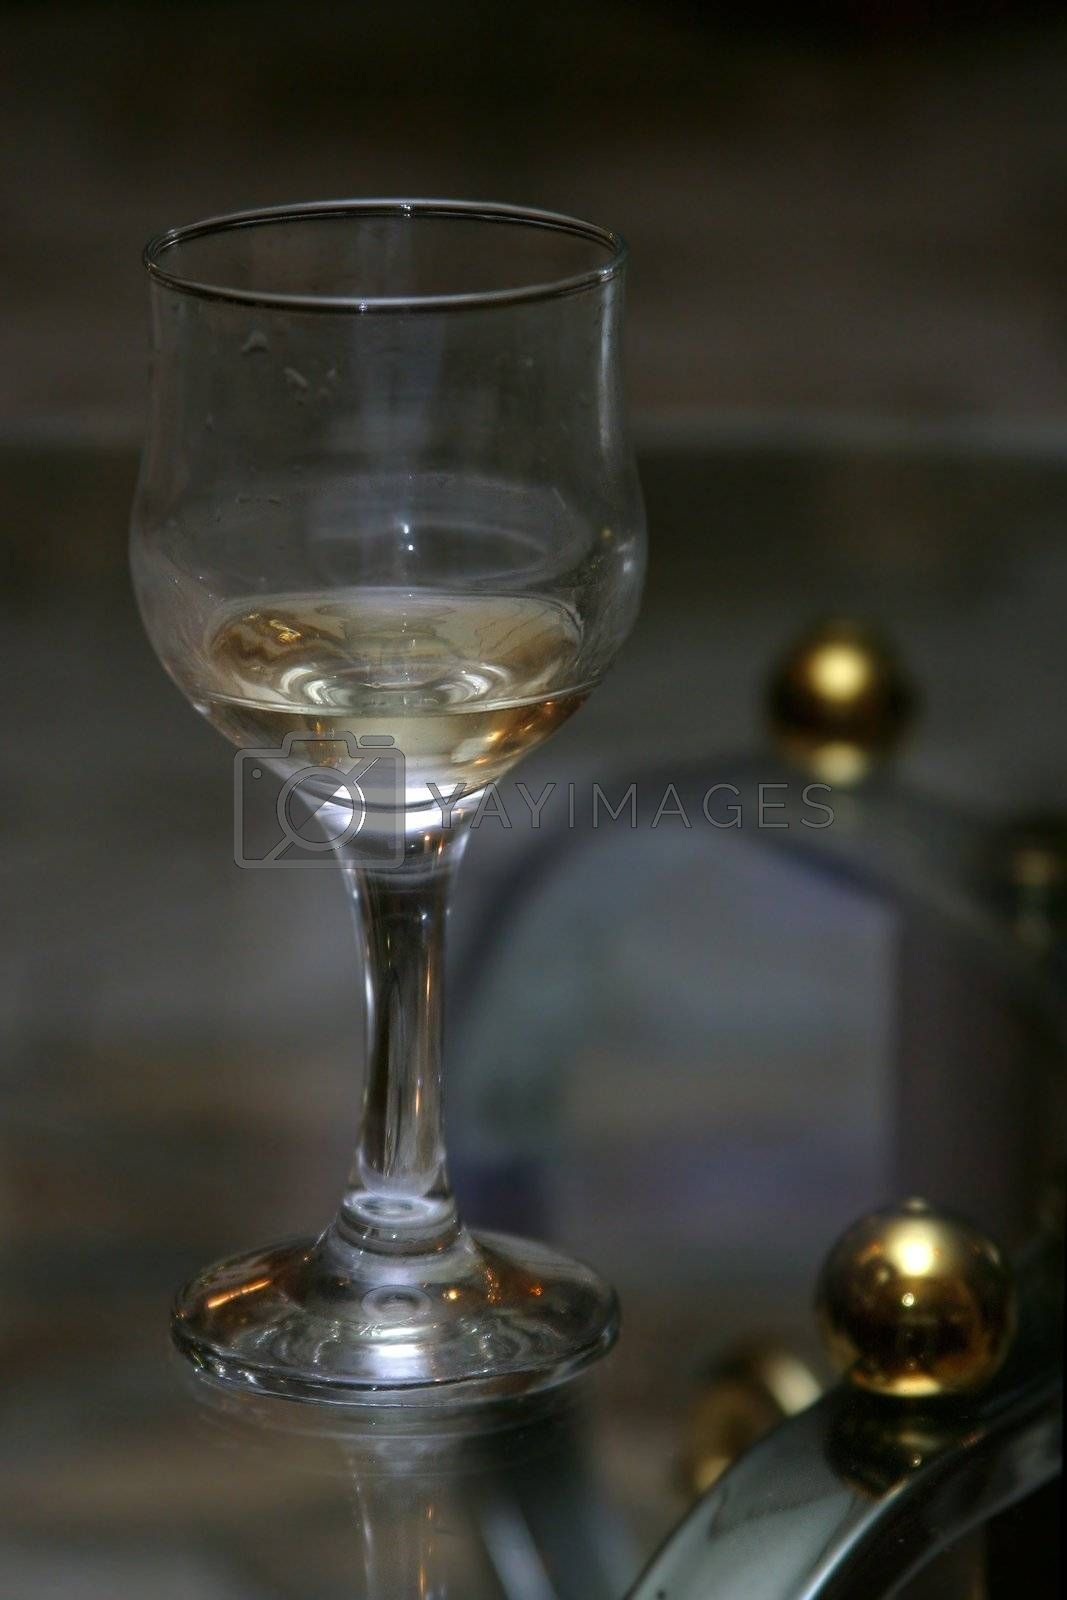 Wine glass with a wine on a transparent table